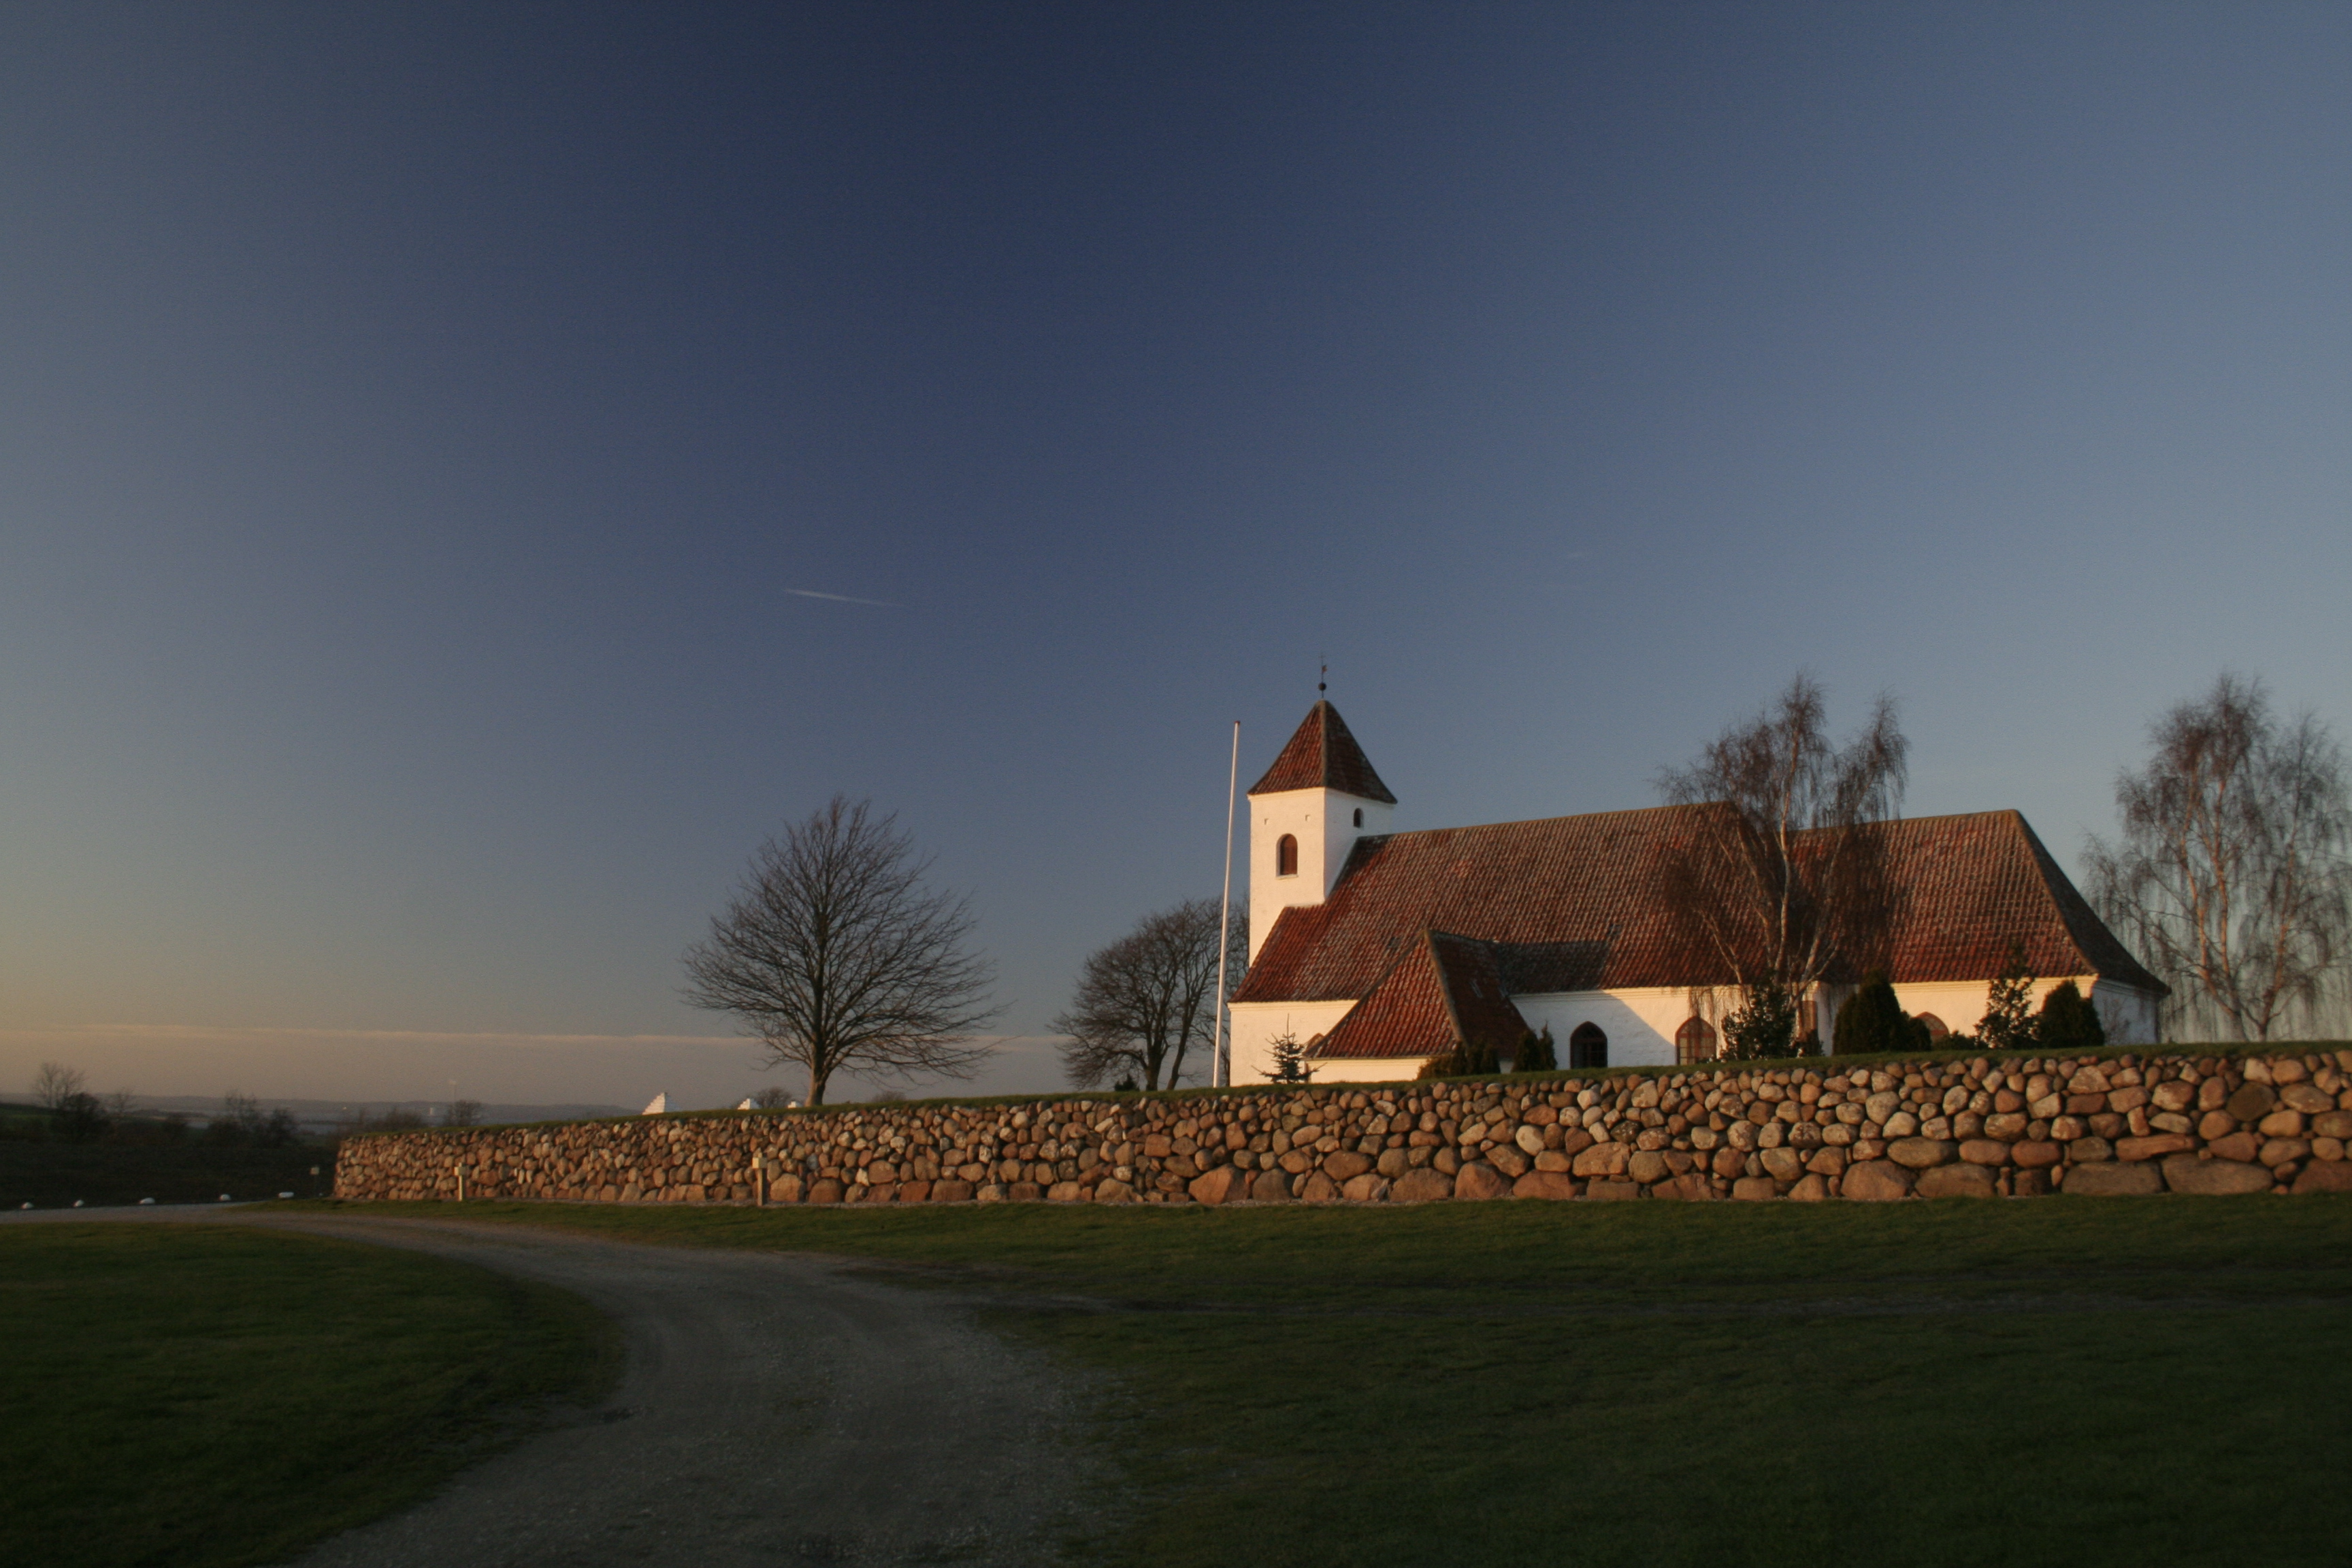 Church, Building, Burial, Cemetery, Nature, HQ Photo